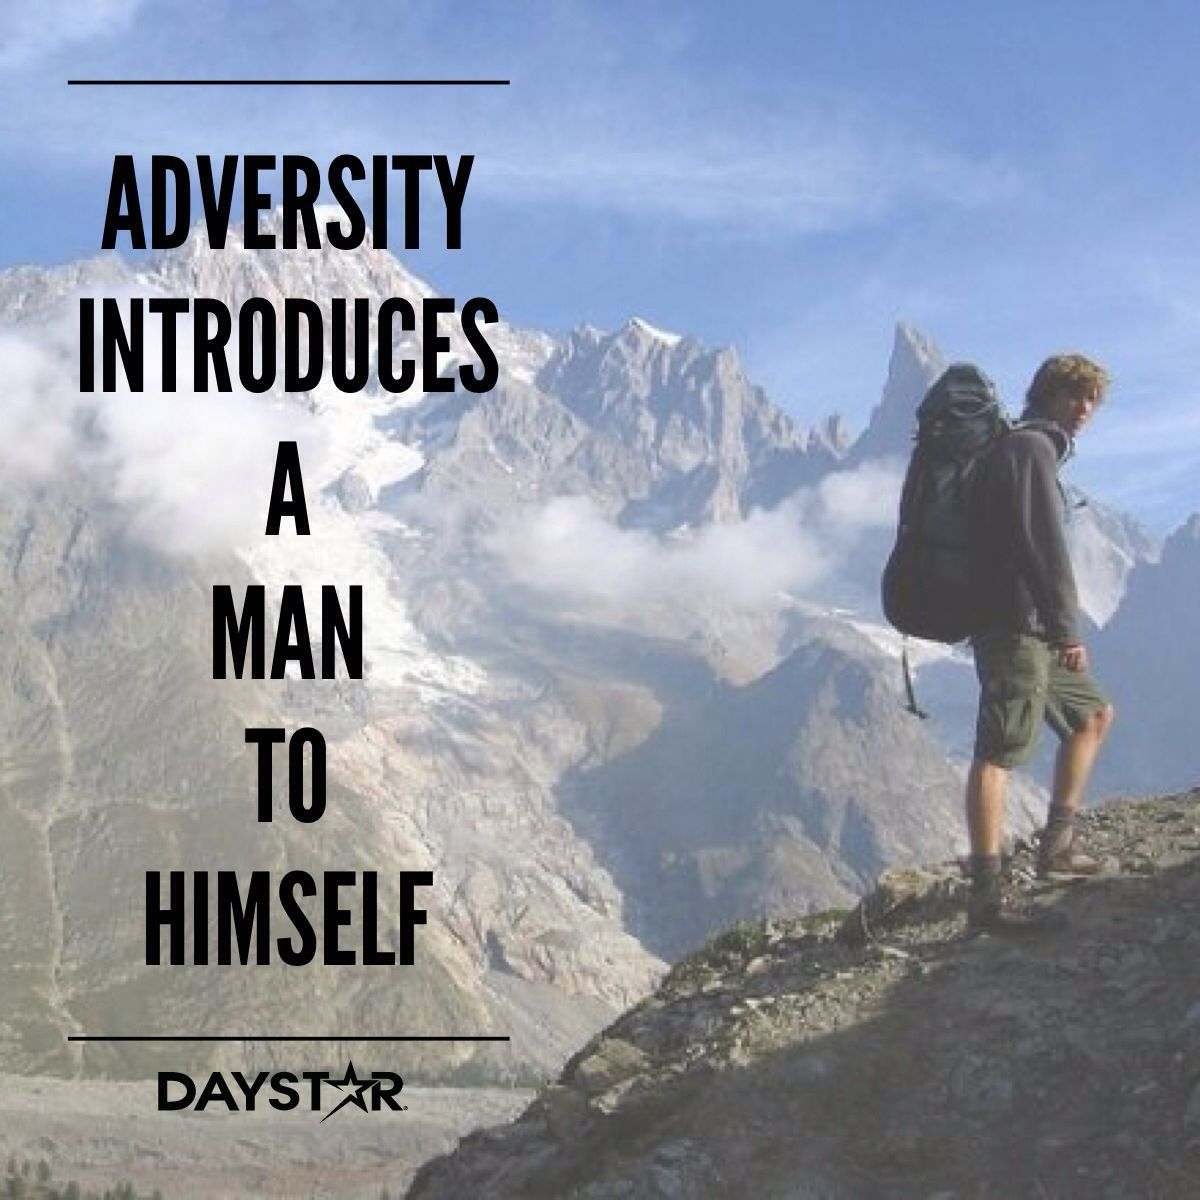 Adversity Introduces A Man To Himself Daystar